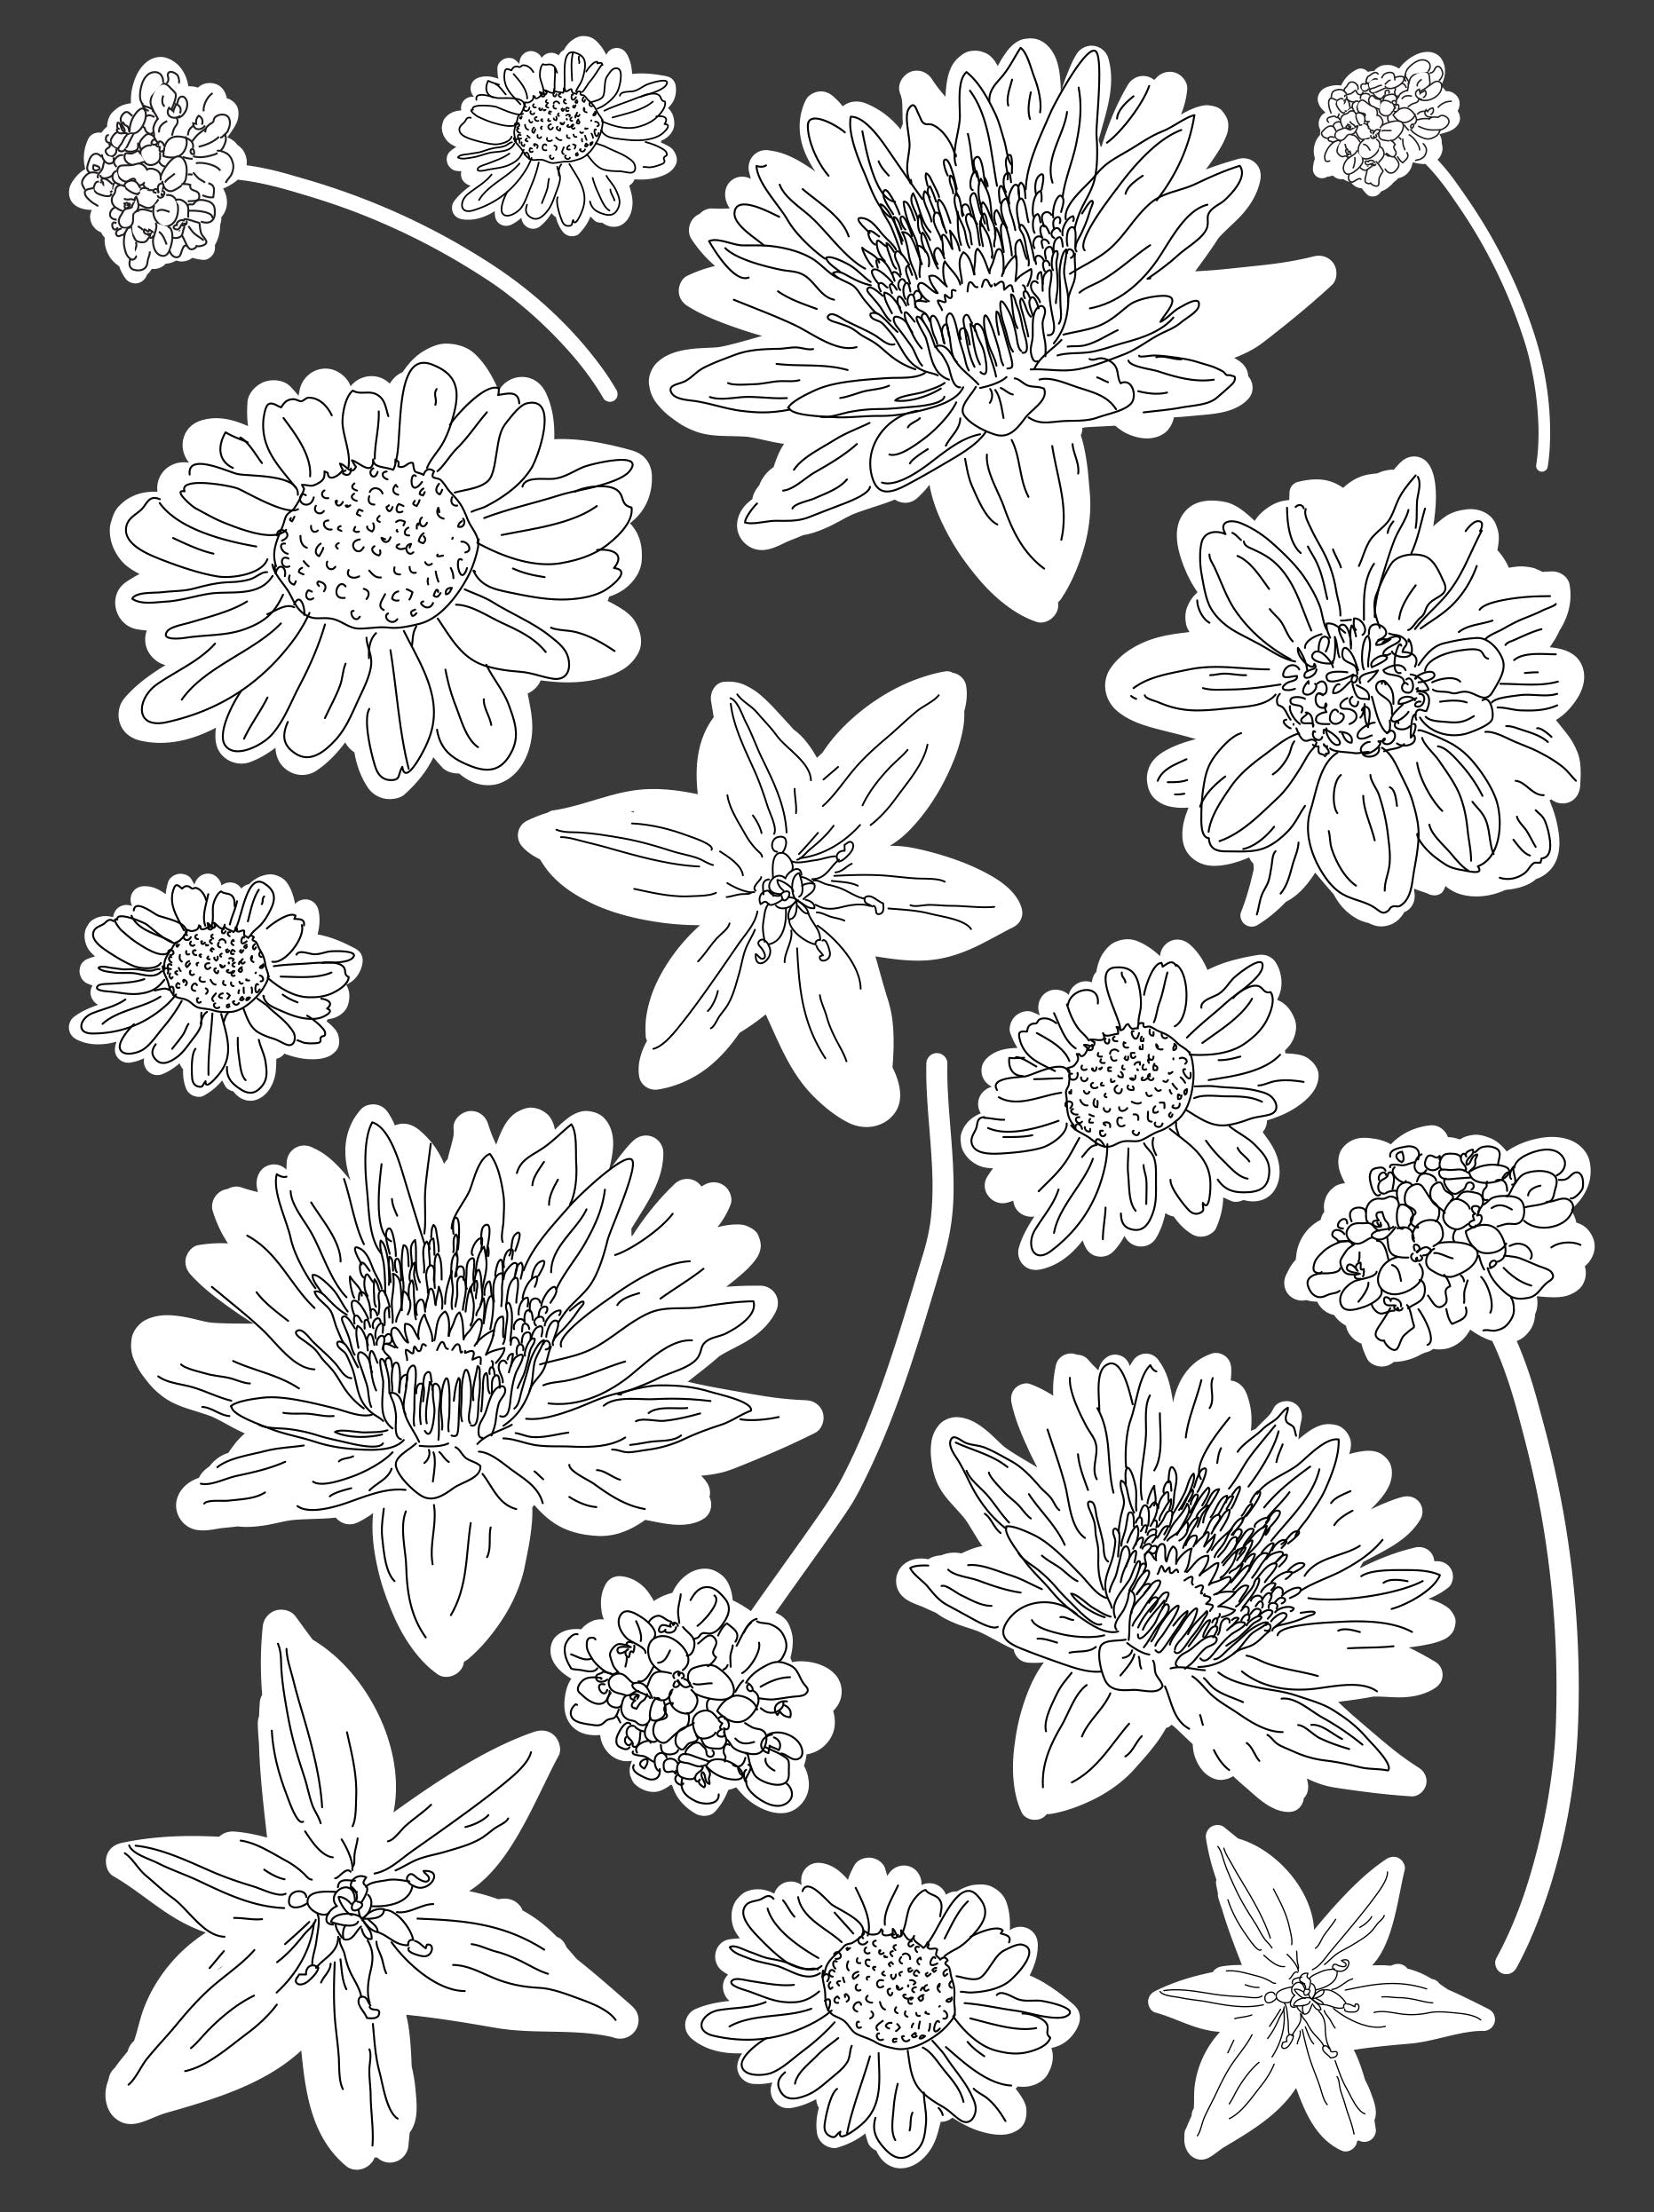 24 West Lemon Sketched Flowers Scarf Template